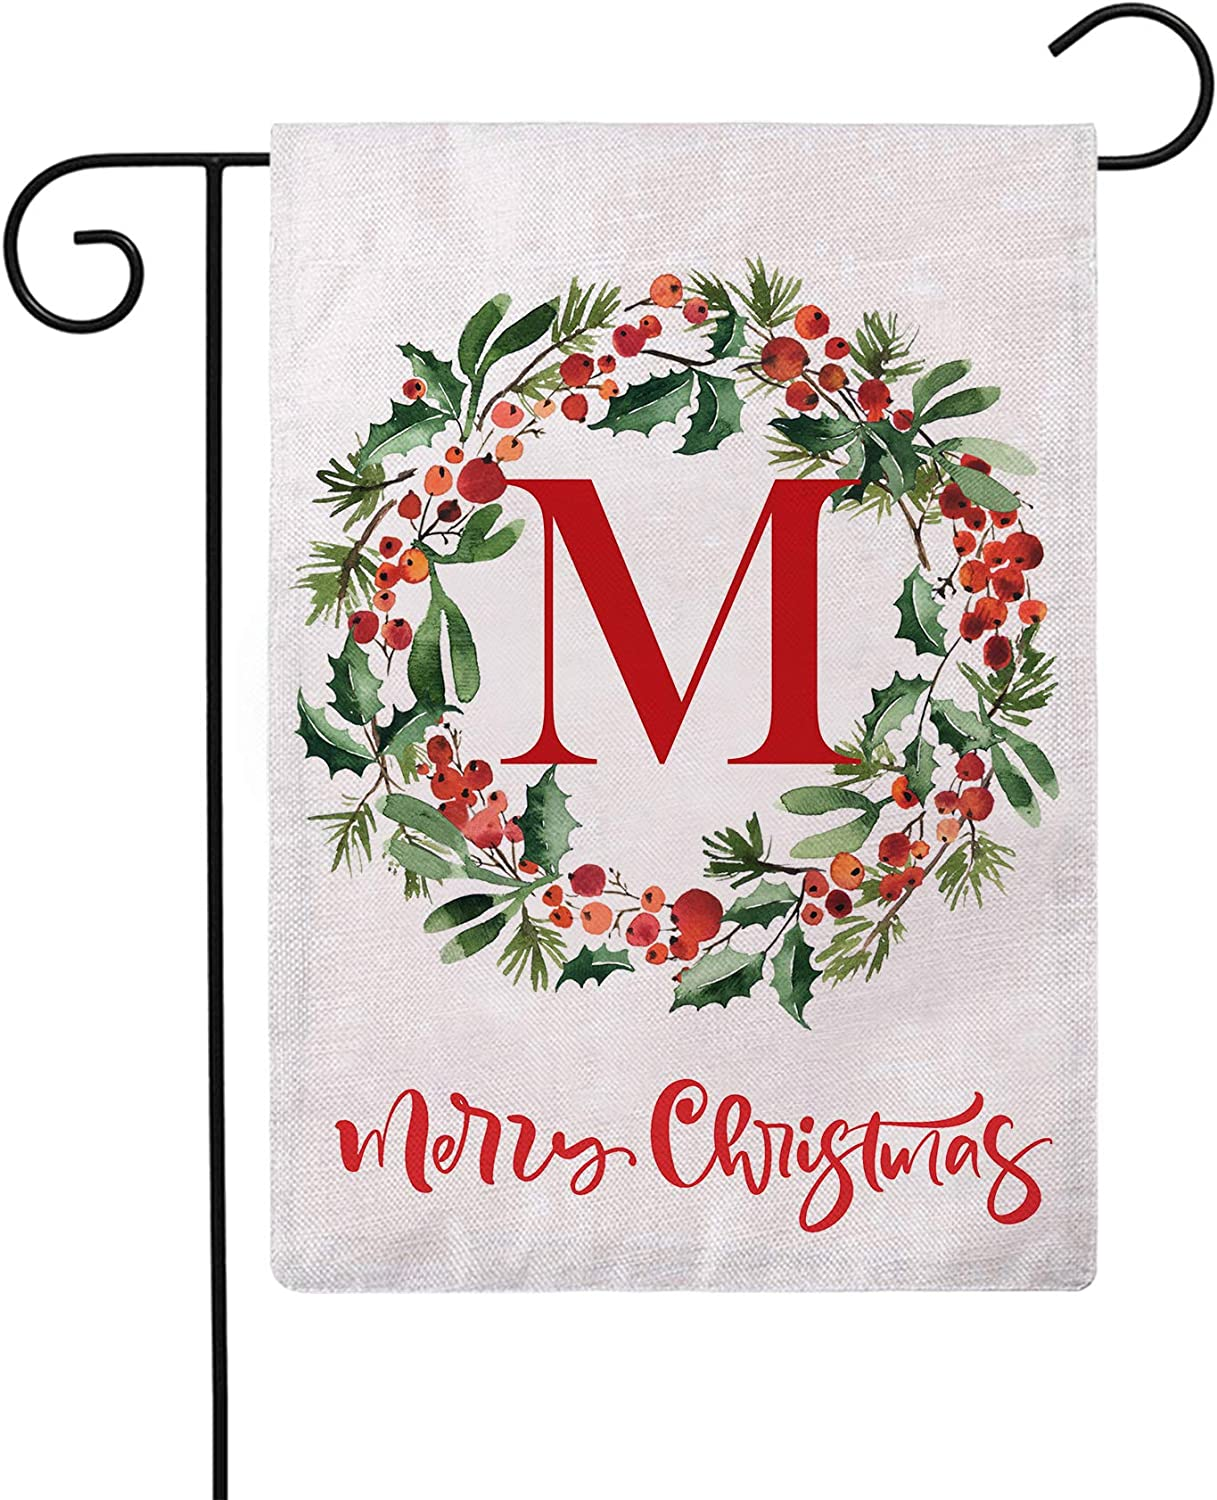 ULOVE LOVE YOURSELF Merry Christmas Wreath Decorative Garden Flags with Monogram Letter M Double Sided Winter Holiday Outdoor Garden Flags 12.5×18 Inch for House Garden Yard Patio Decor (M)